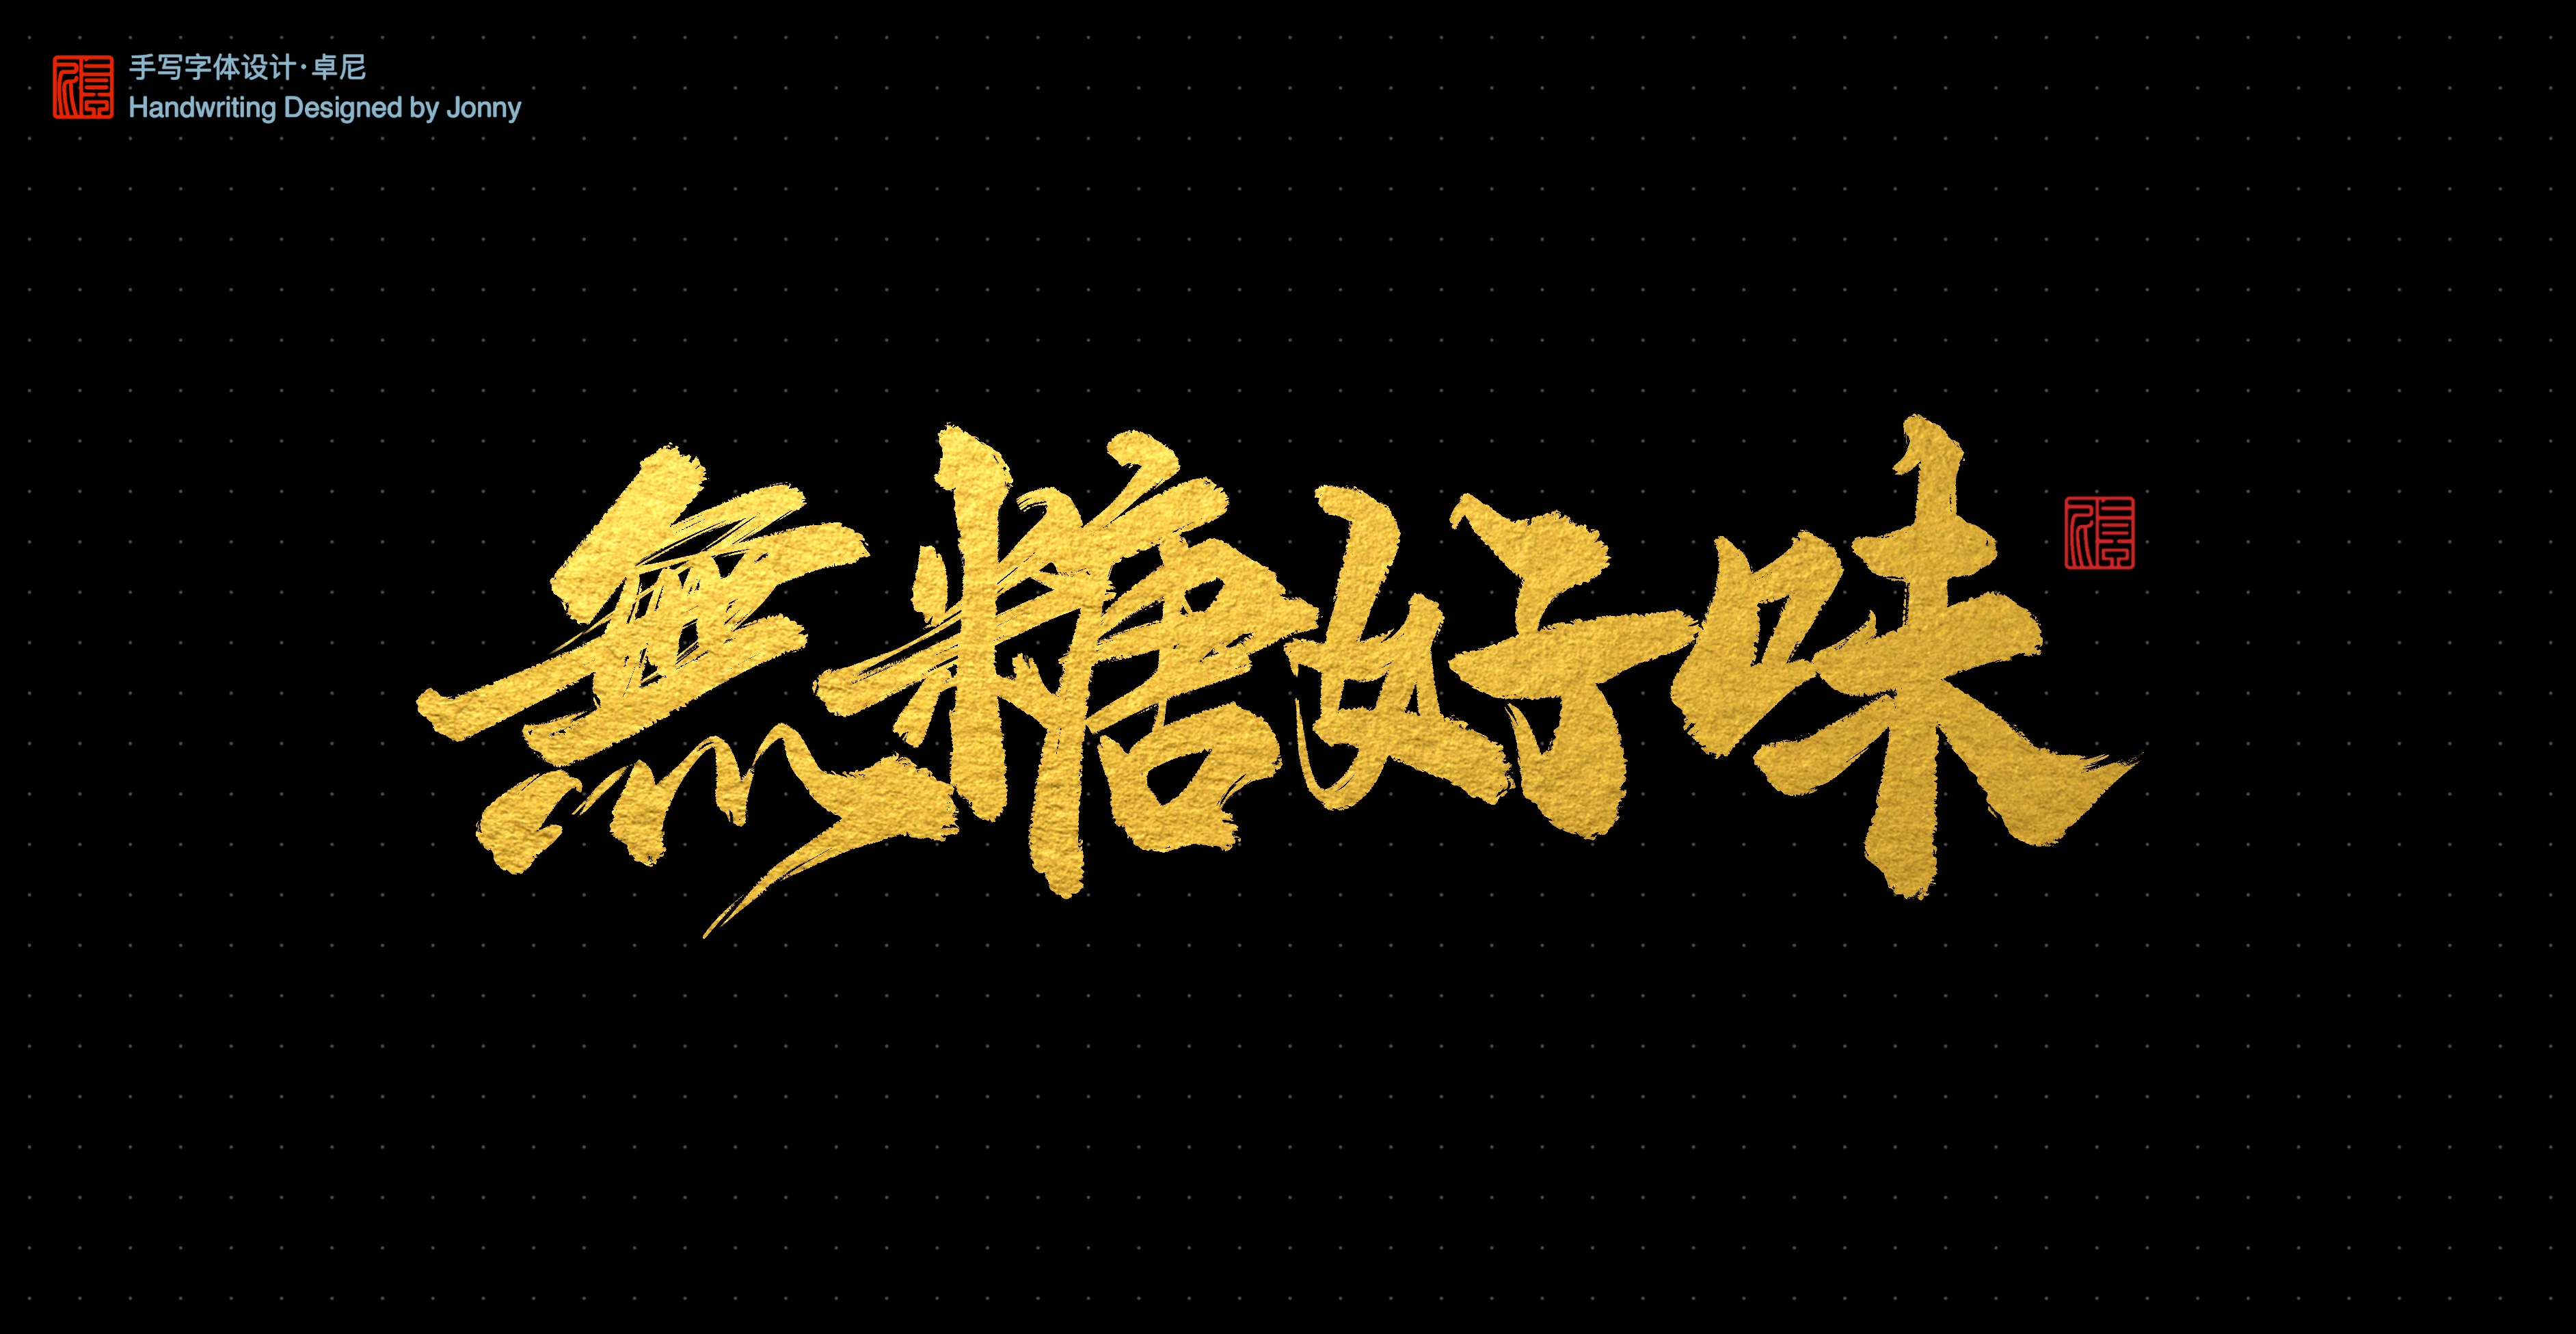 13P Collection of the latest Chinese font design schemes in 2021 #.131